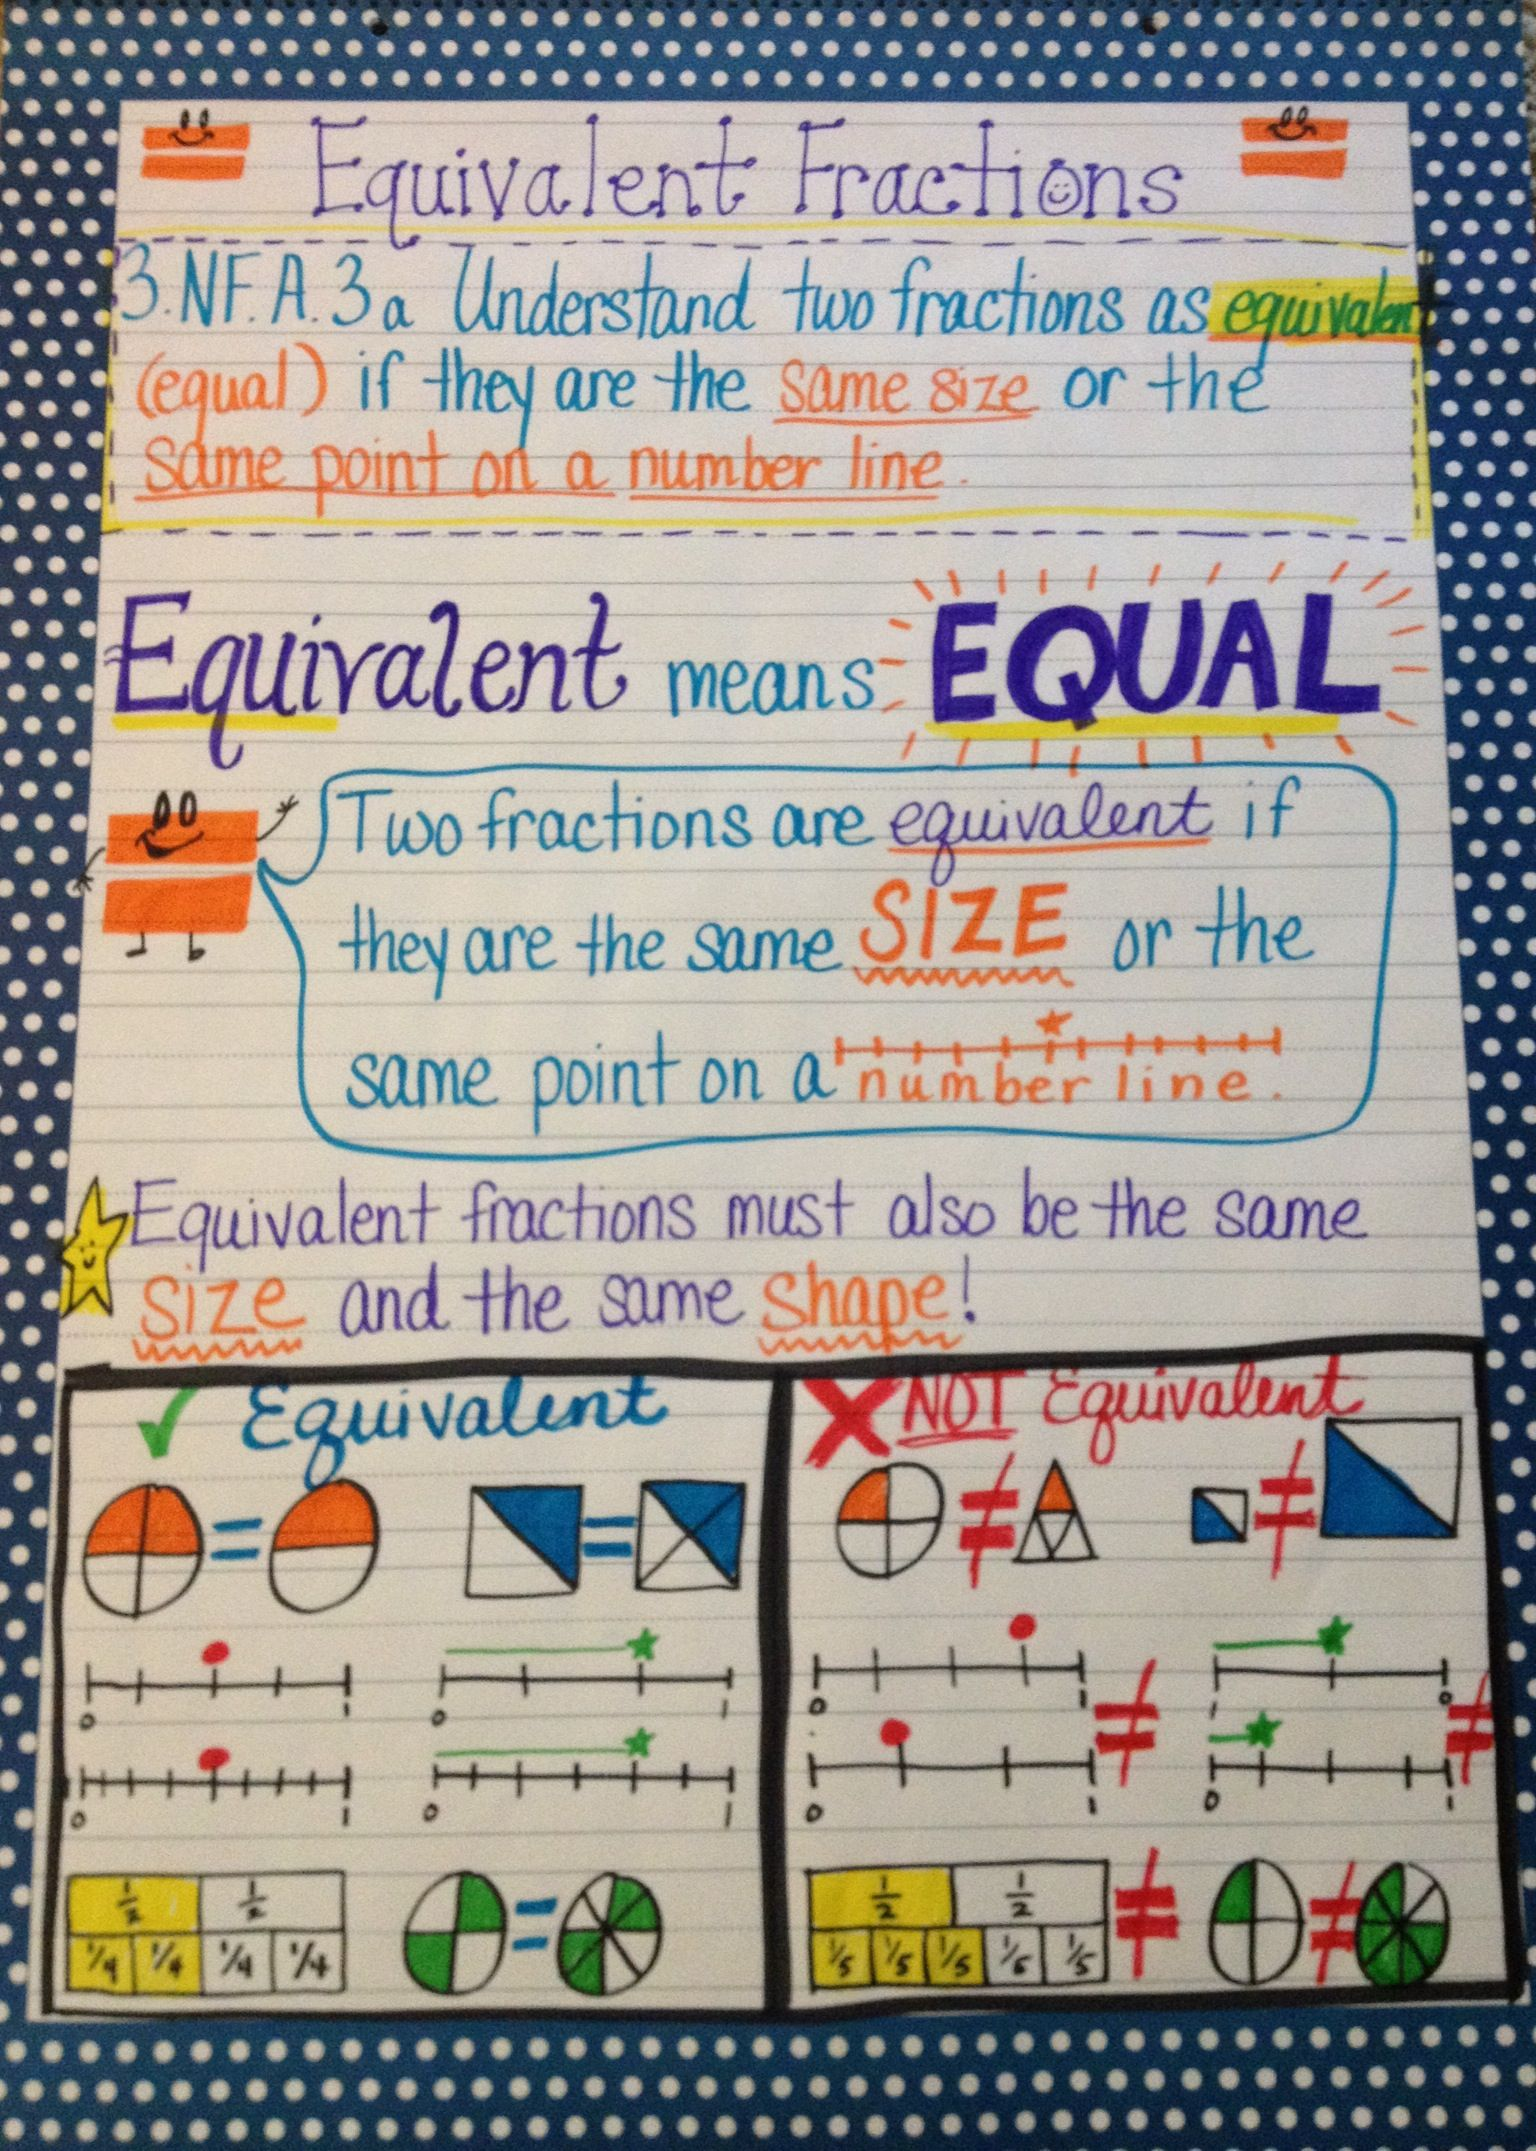 equivalent fraction anchor chart 3.nf.a.3a | fractions | pinterest